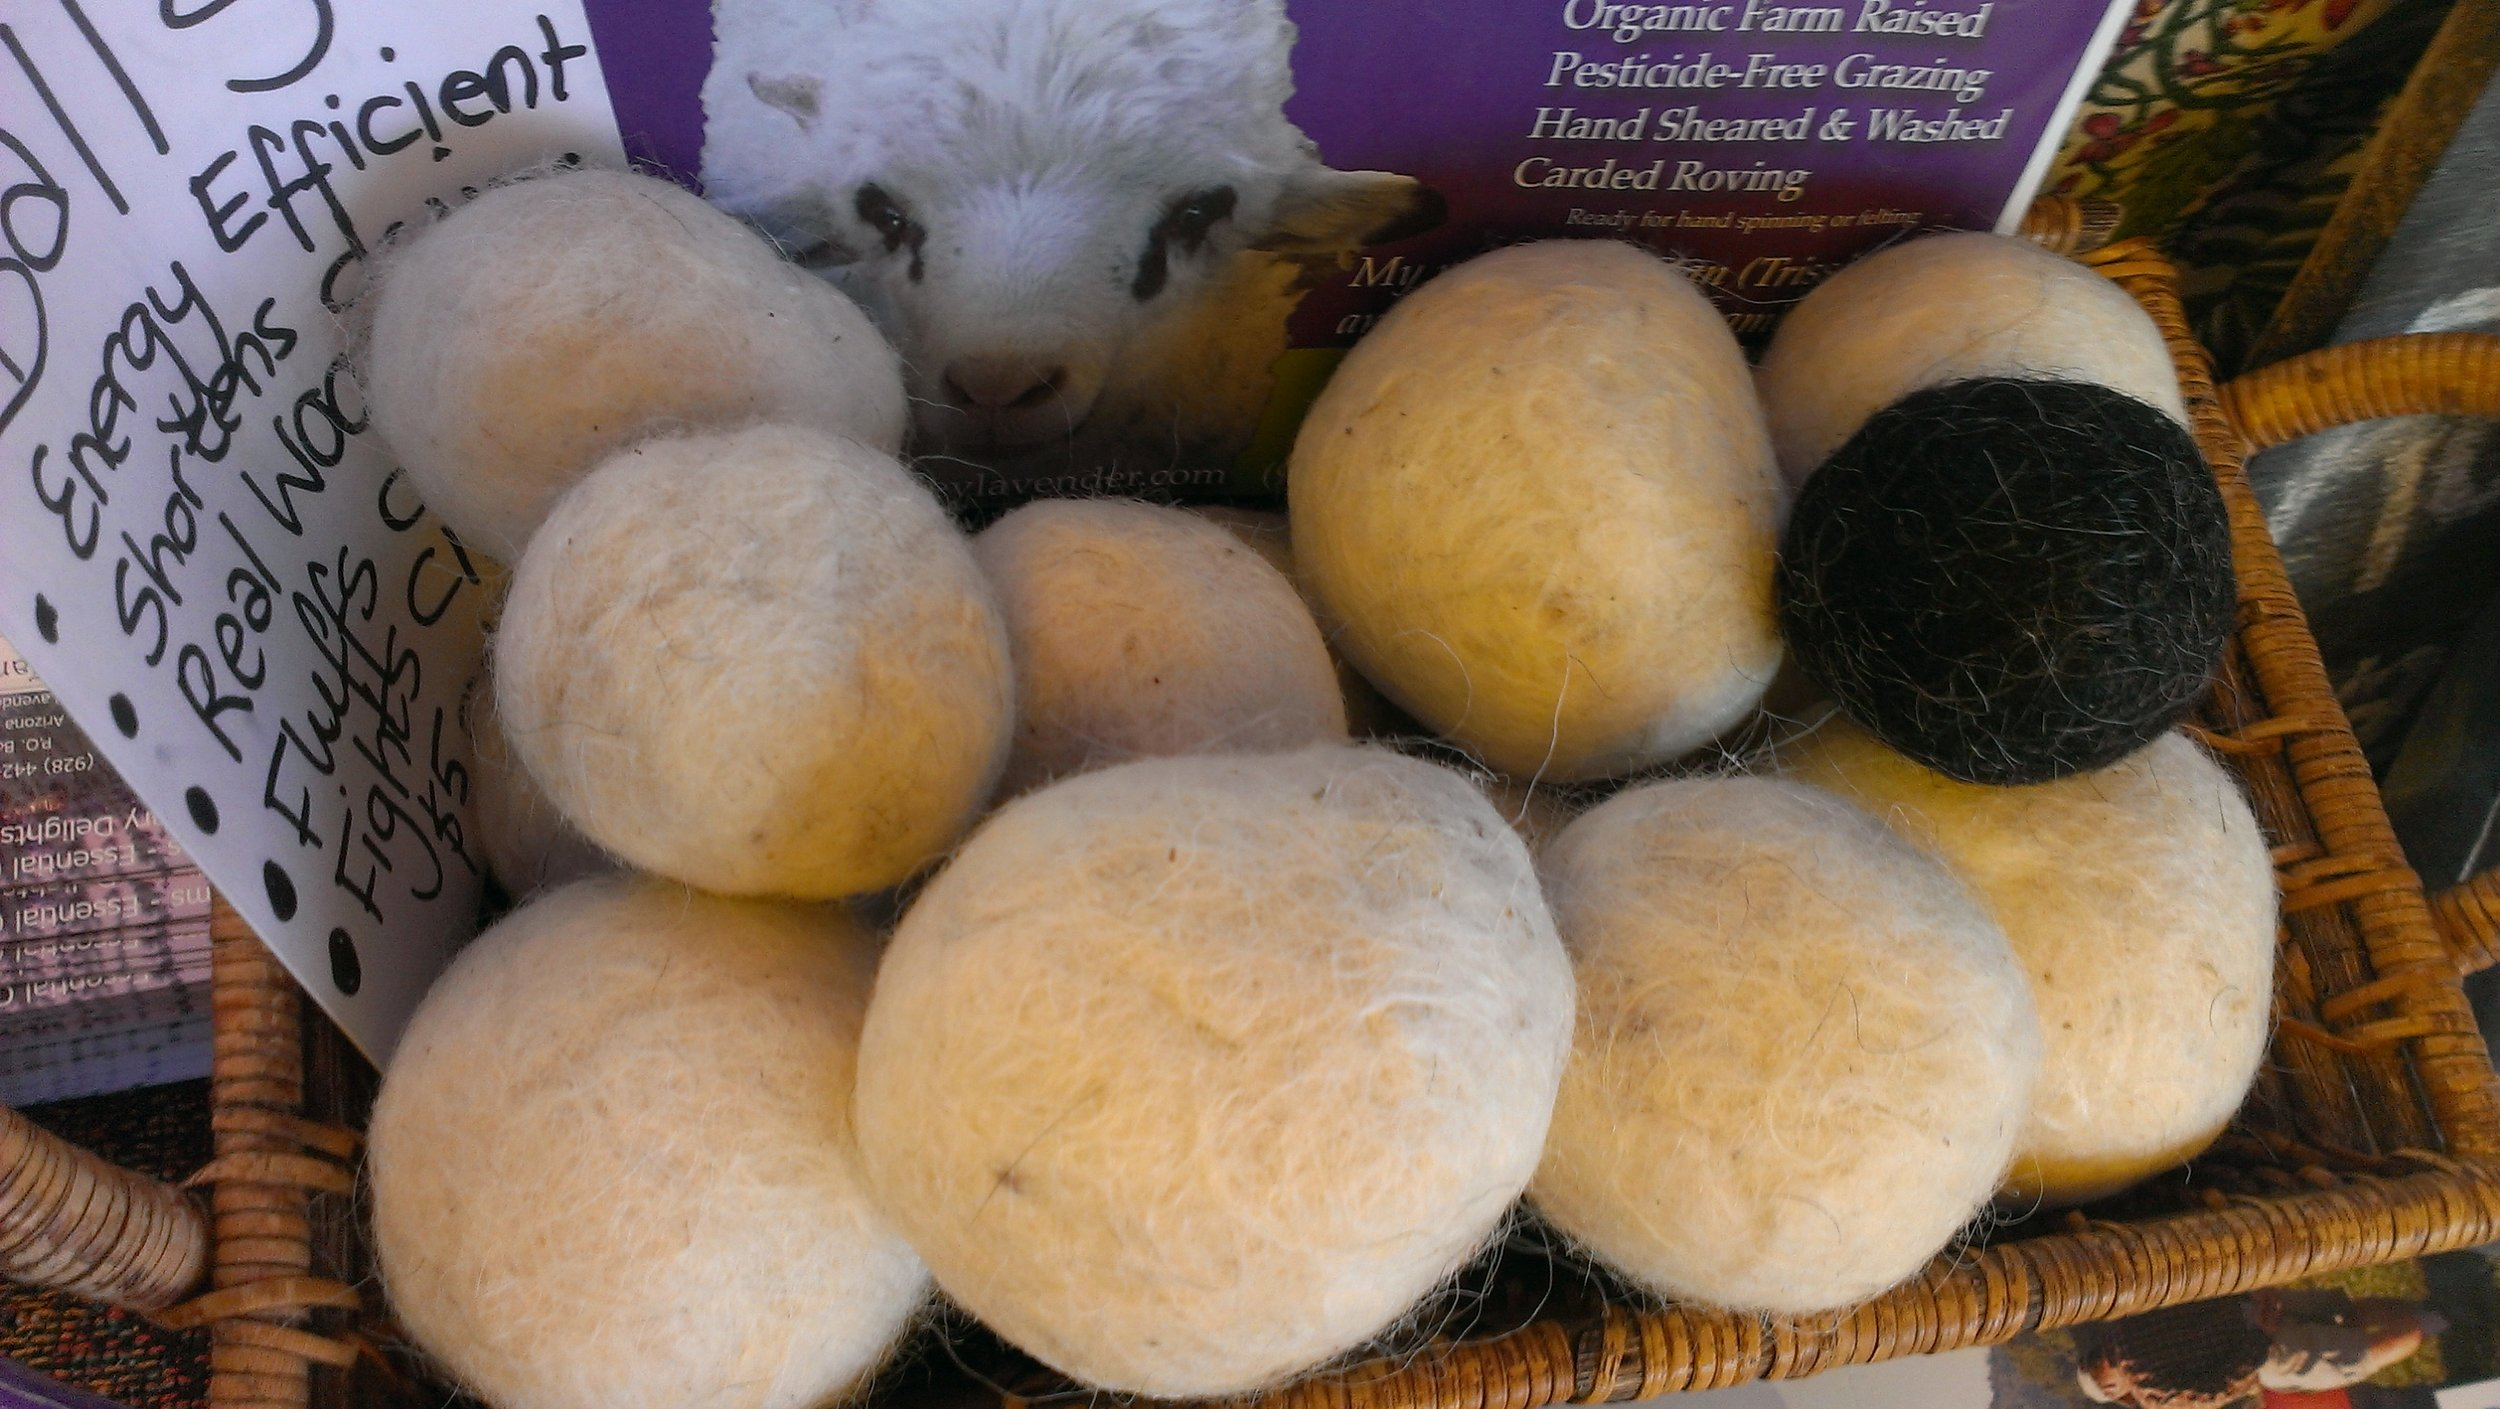 100% felted navajo churro wool dryer balls with lavender oil (or use them as cat toys......, stress ball, or just for the scent)